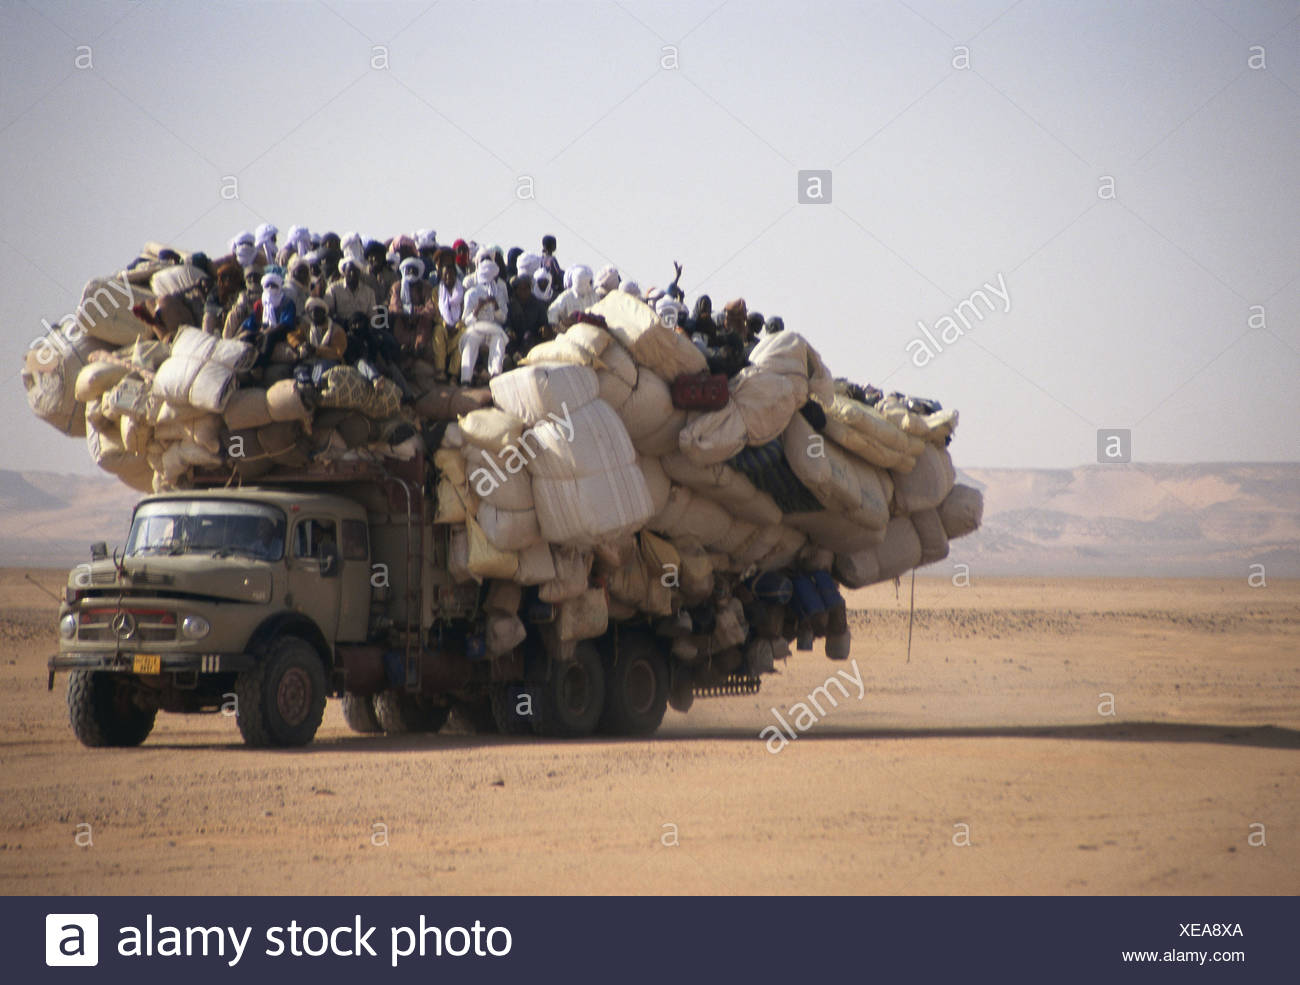 Chad, Borkou, wadi Doum, Sand runway, truck, overcrowds, Central, Africa, landlocked country, Sahara, desert, wild scenery, truck, truck, transport, promotion, costs, people, locals, florid - Stock Image